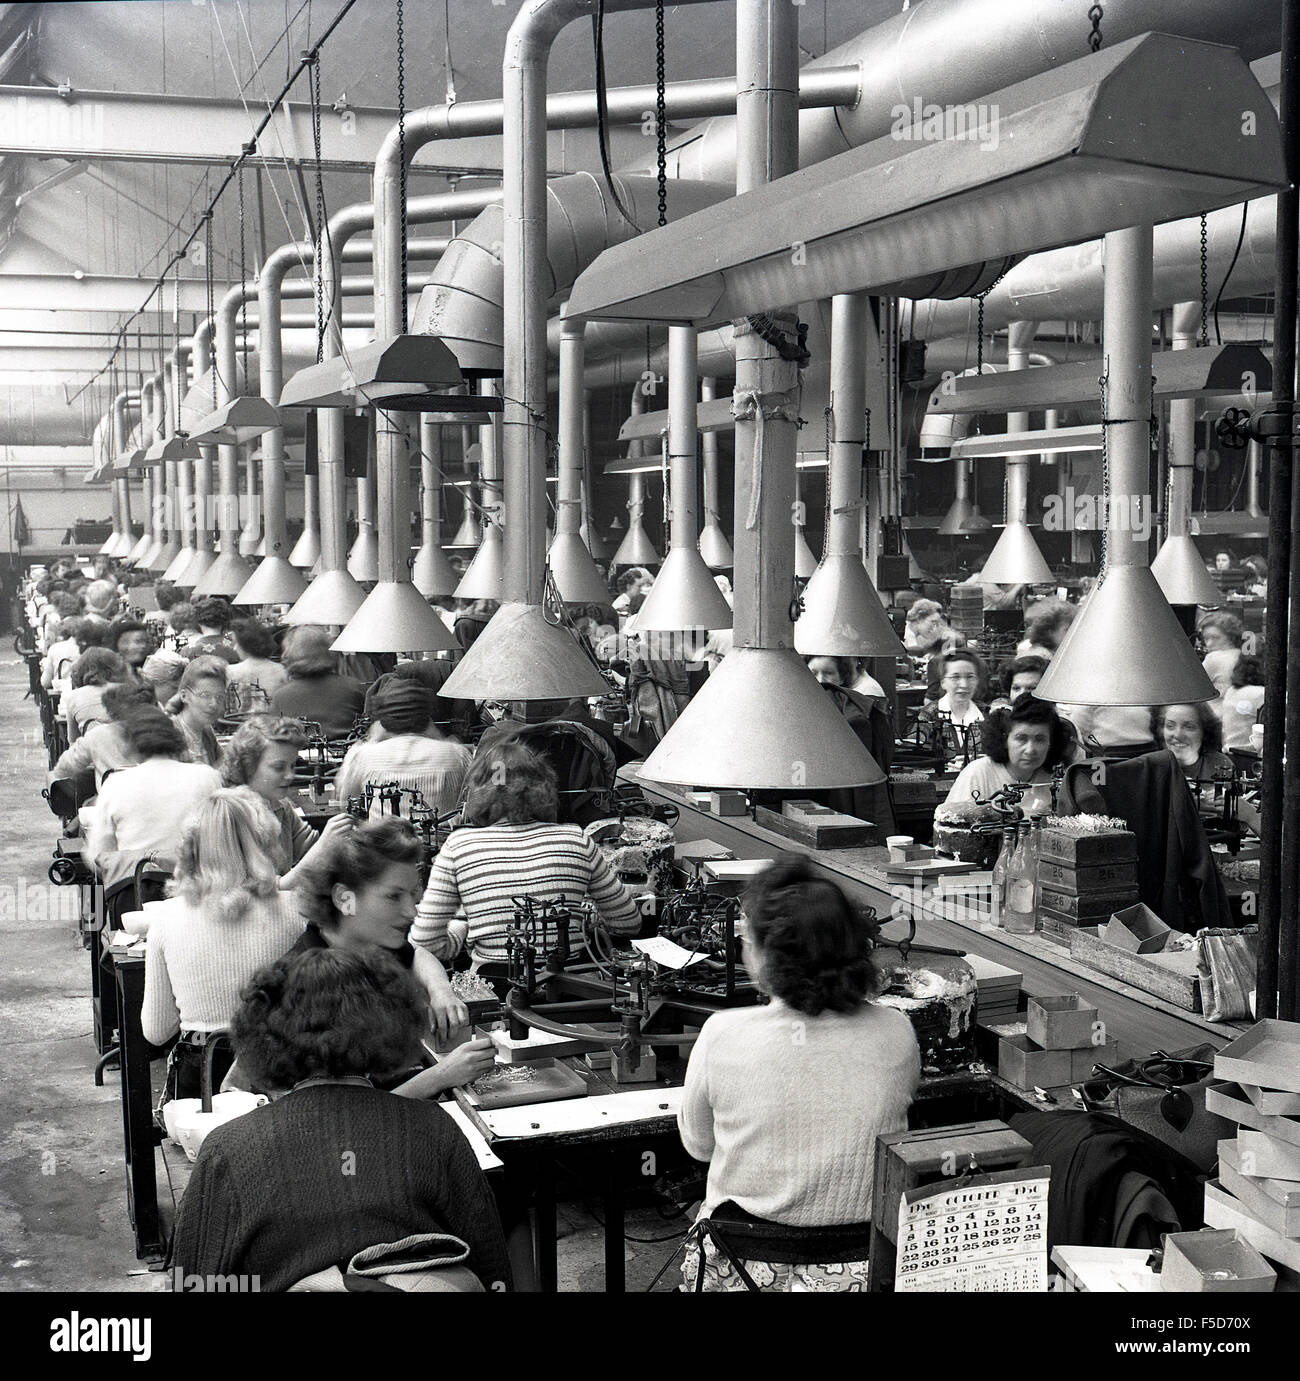 October 1950 And Historical View Of Rows Of Female At Work On A